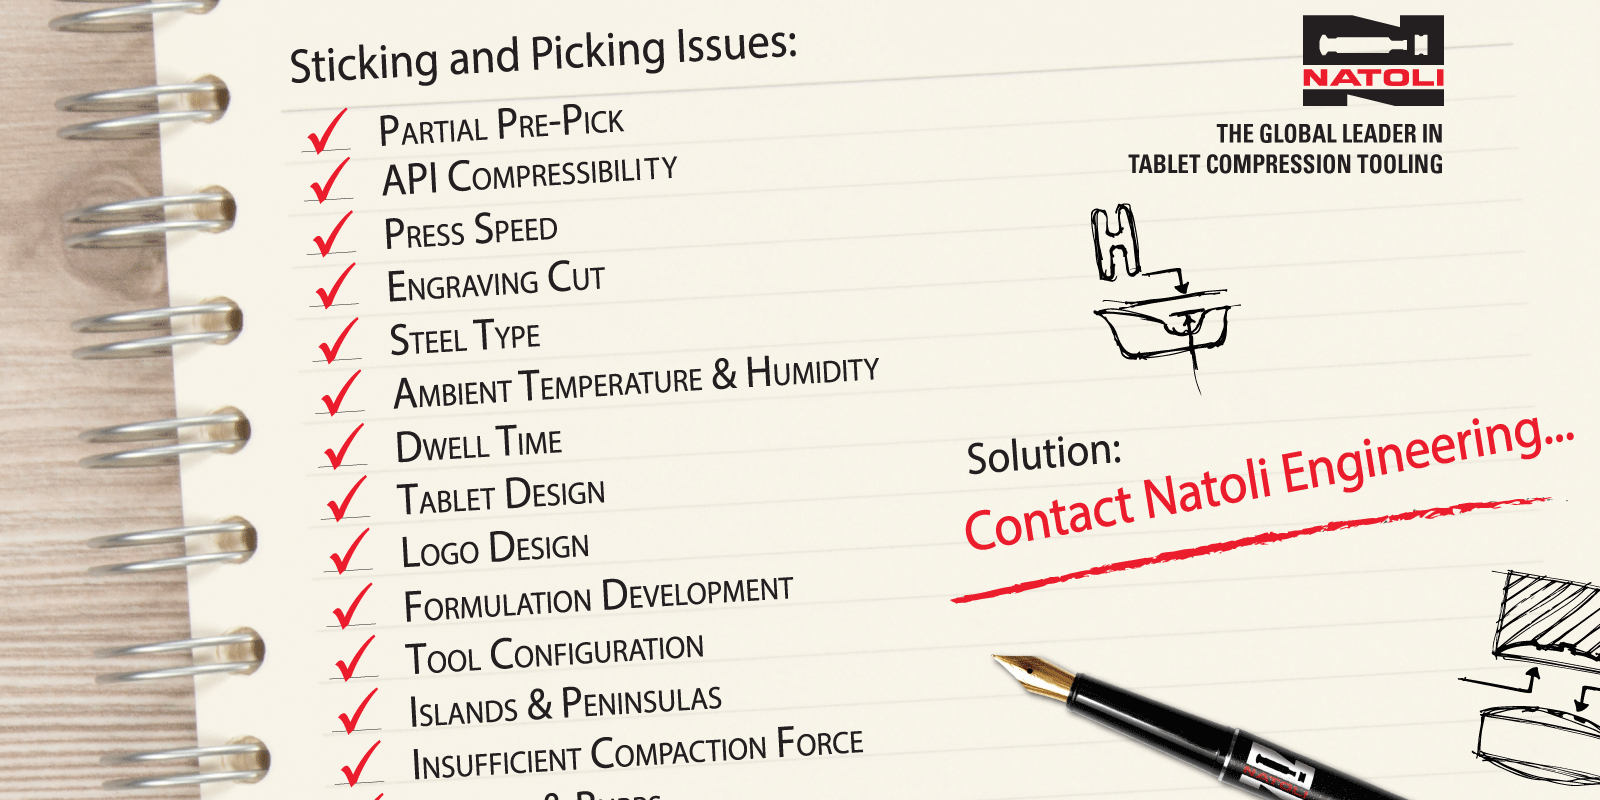 Natoli Engineering helps solve tablet and tooling issues.